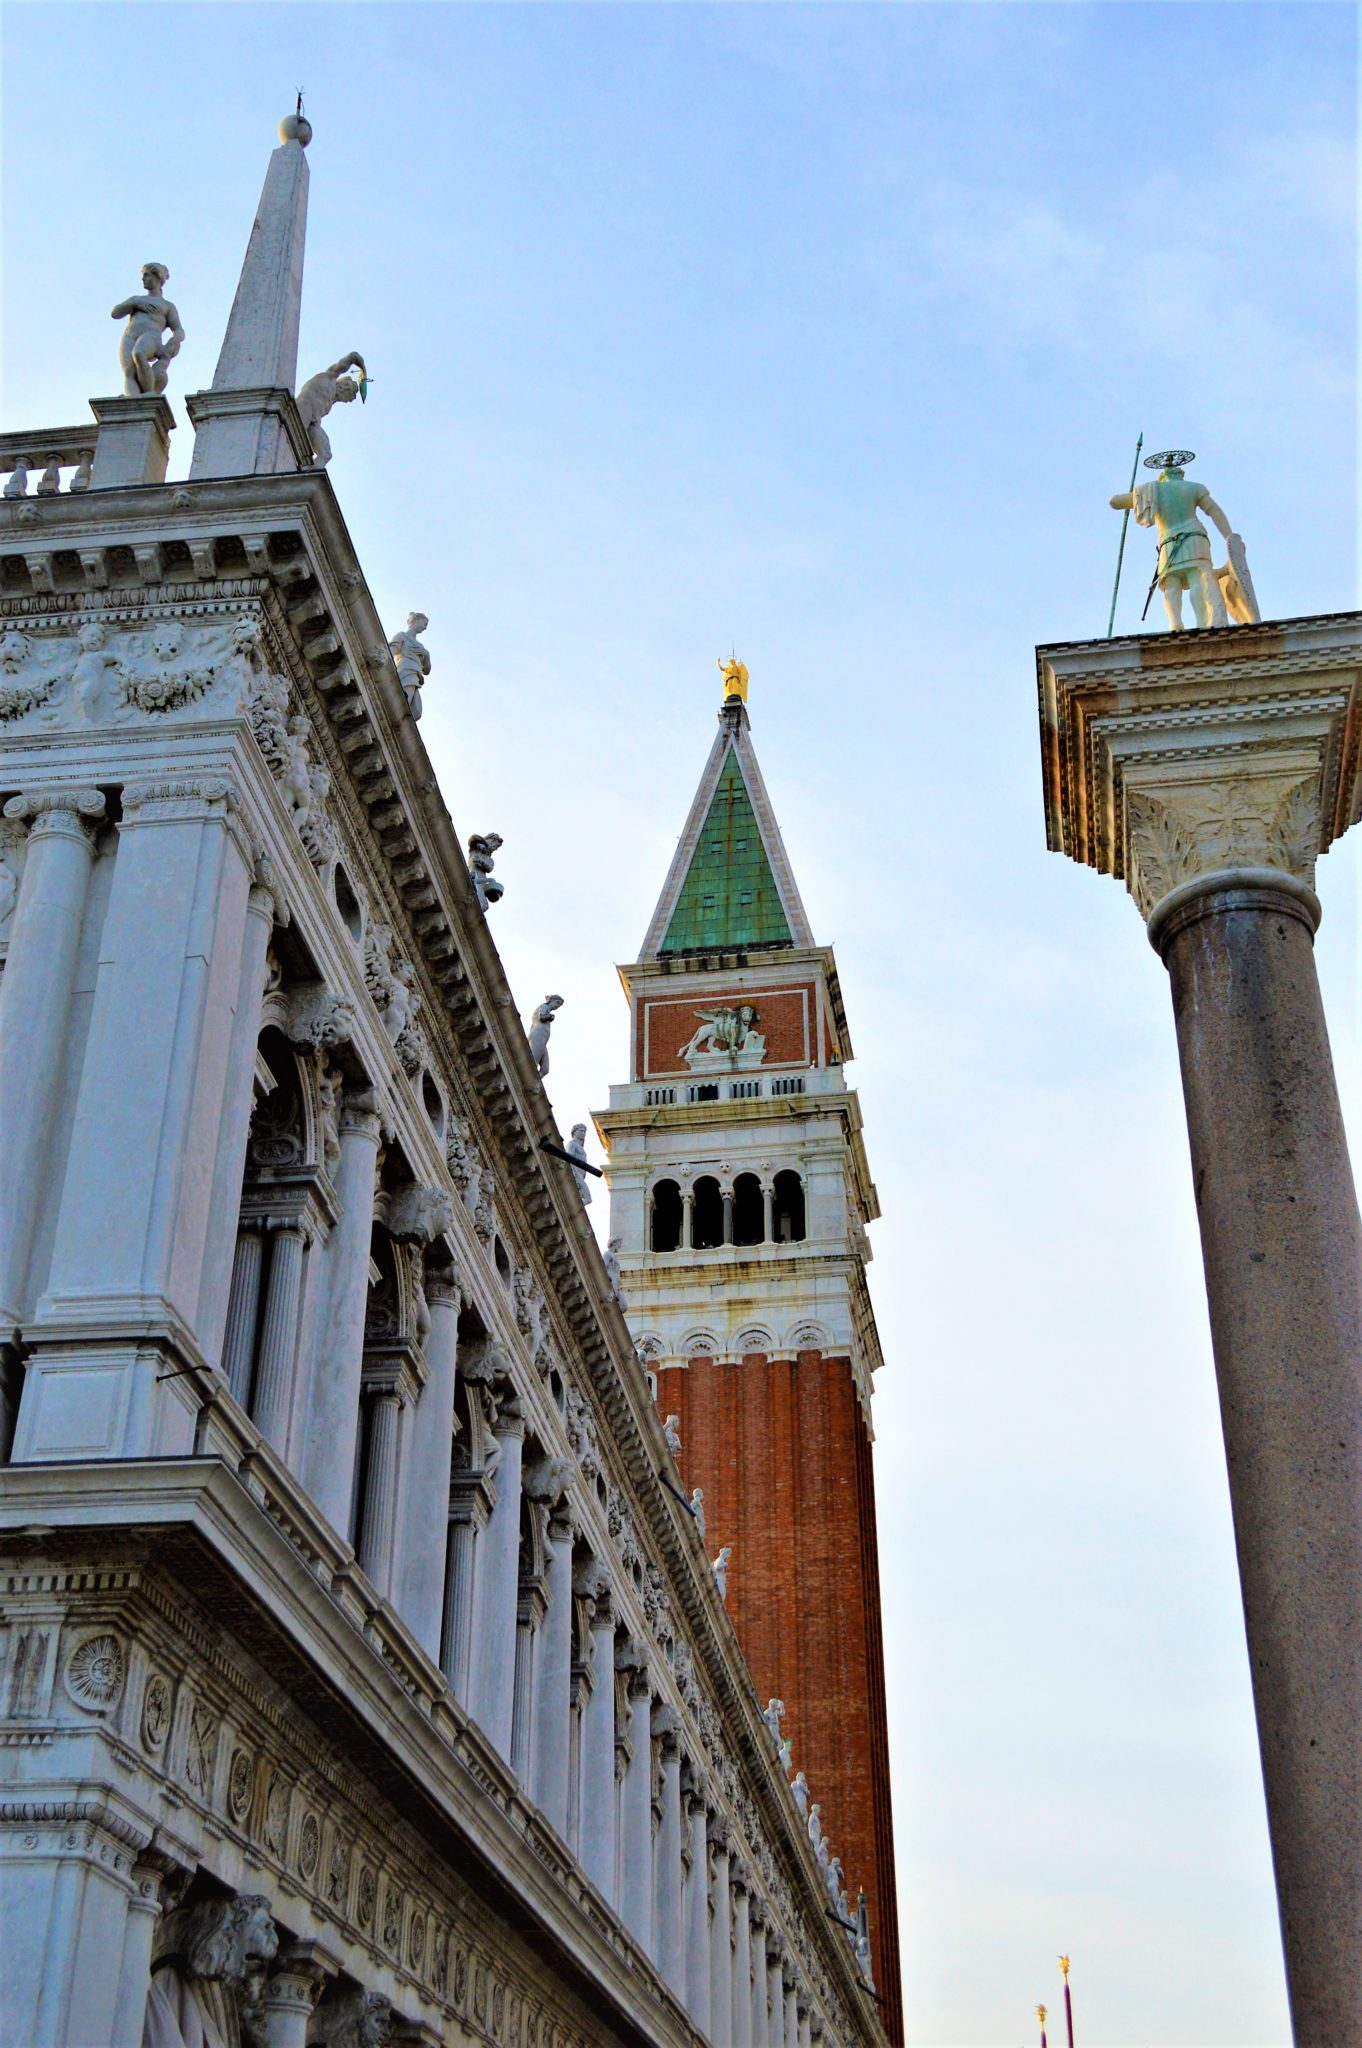 Buildings St Mark's Square, Venice, Italy